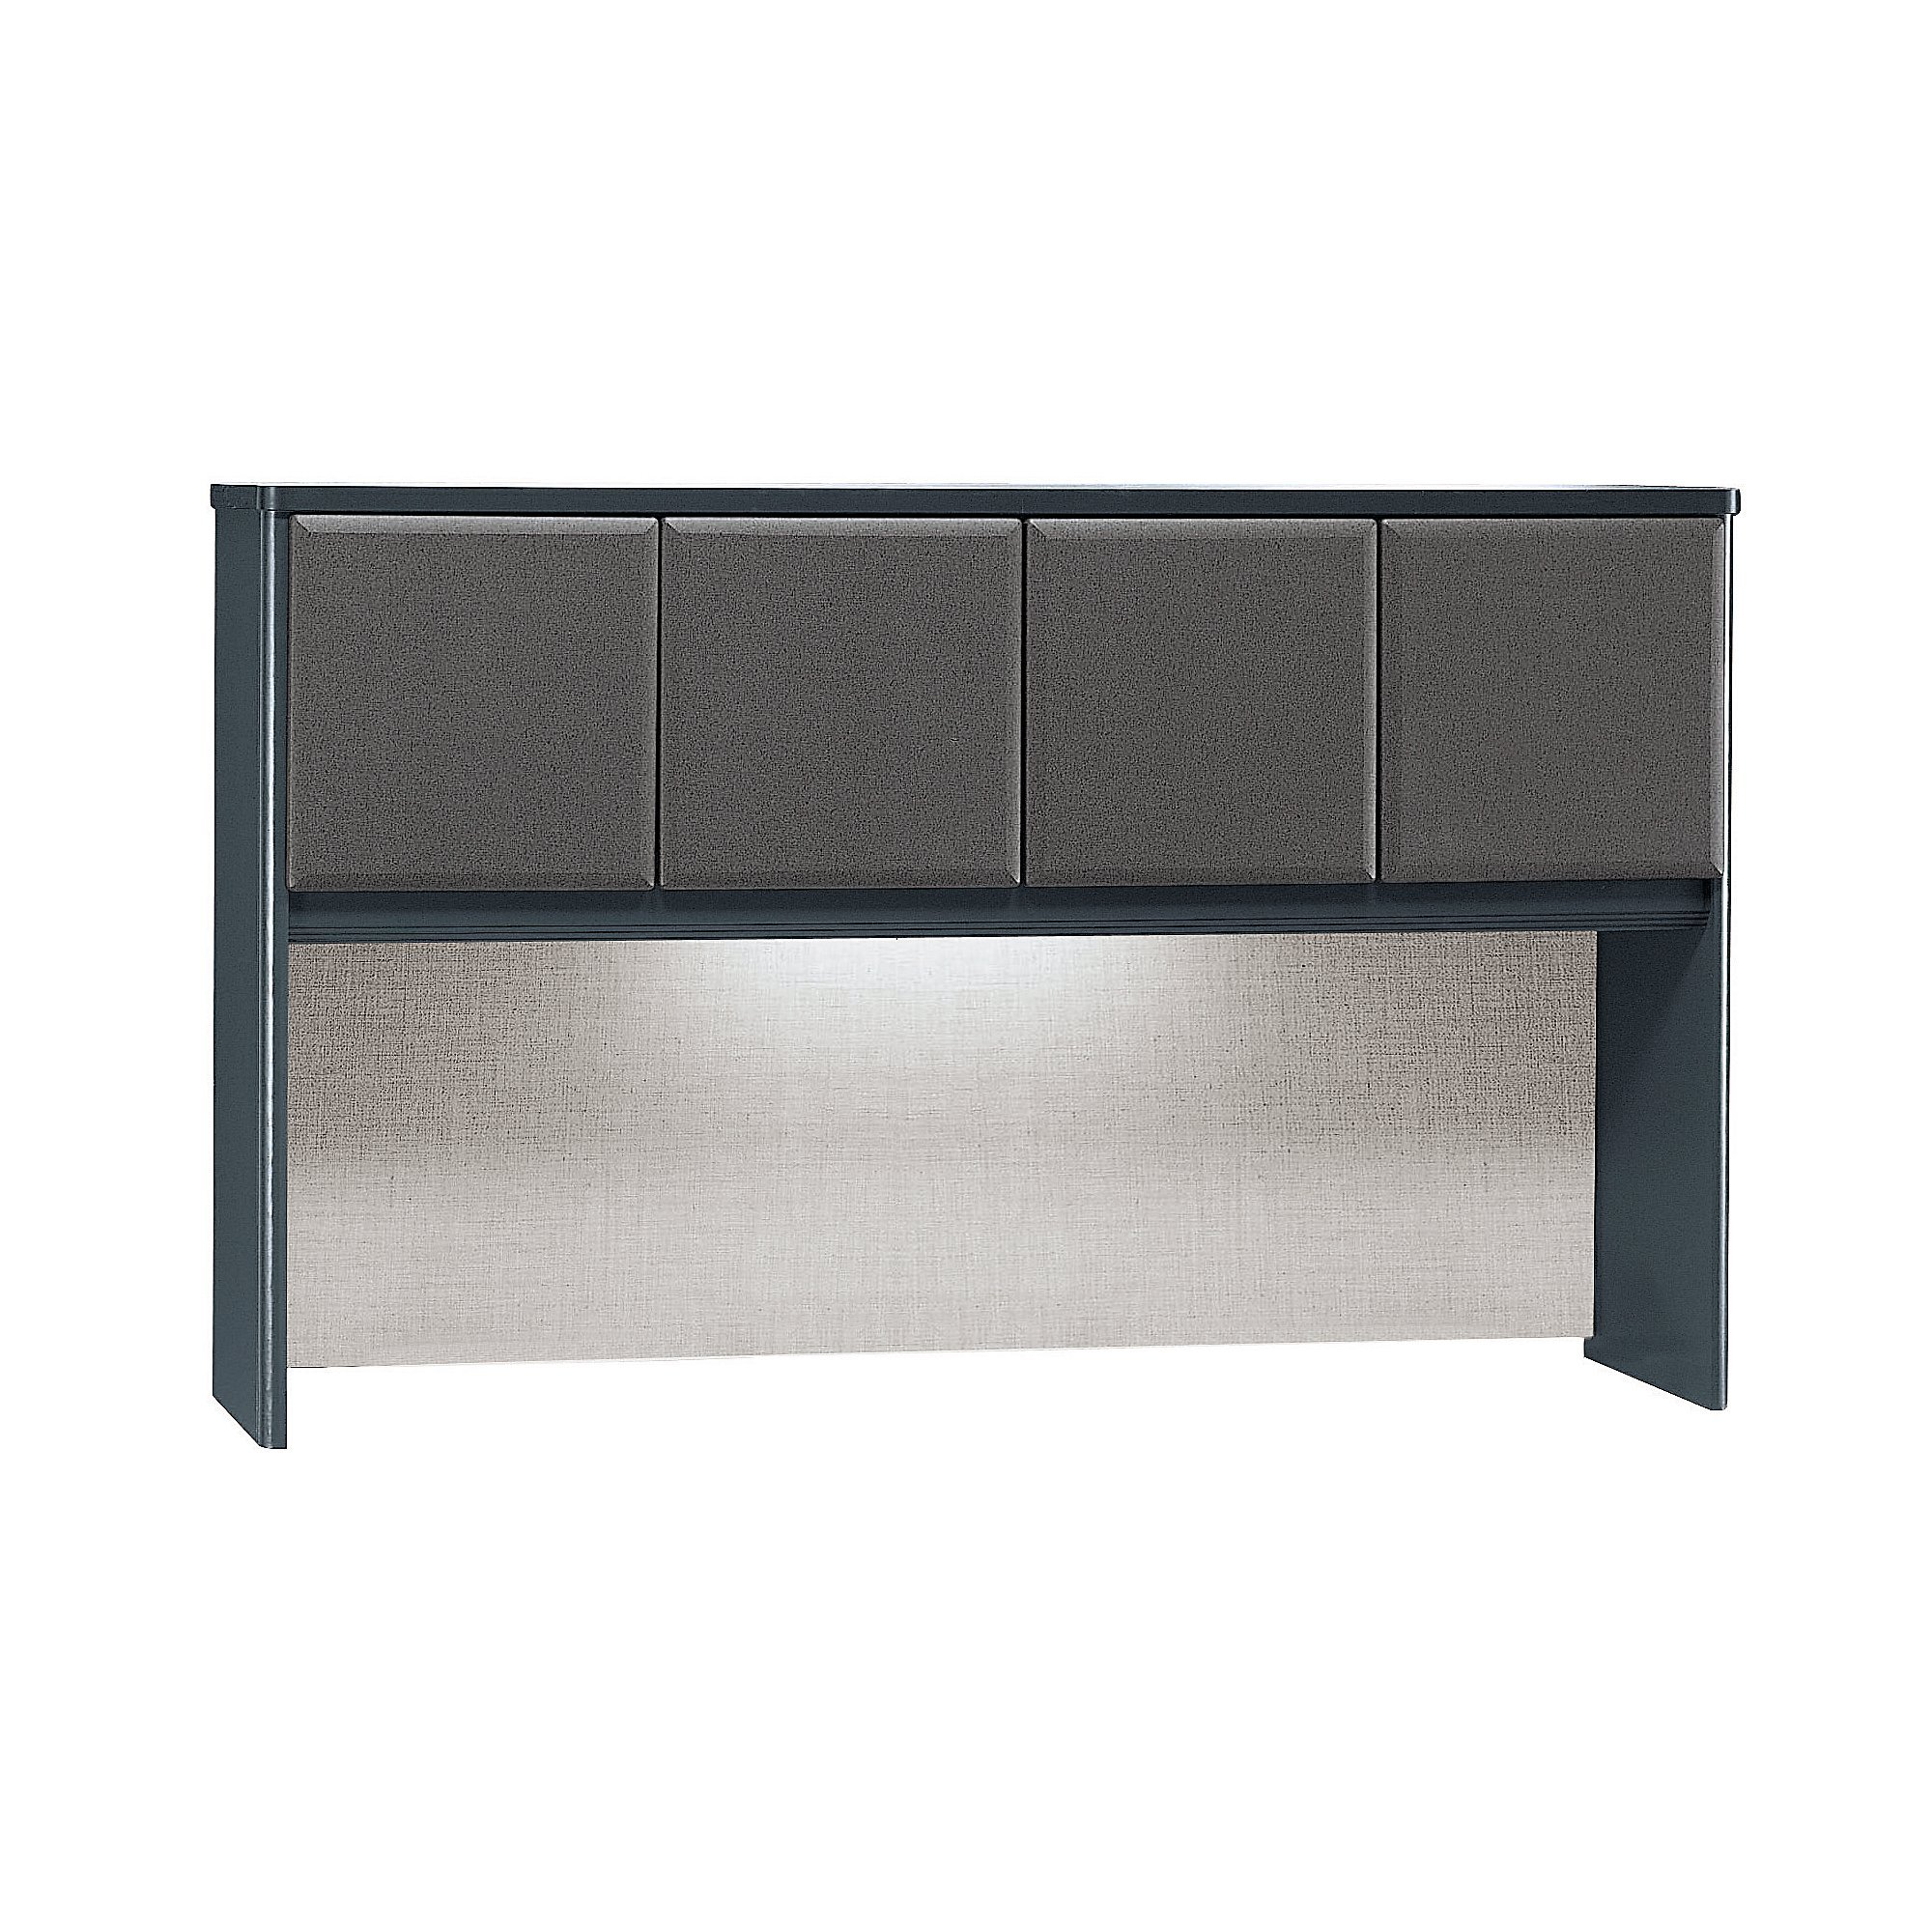 Bush Business Furniture Series A Collection 60W Hutch in Slate by Bush Business Furniture